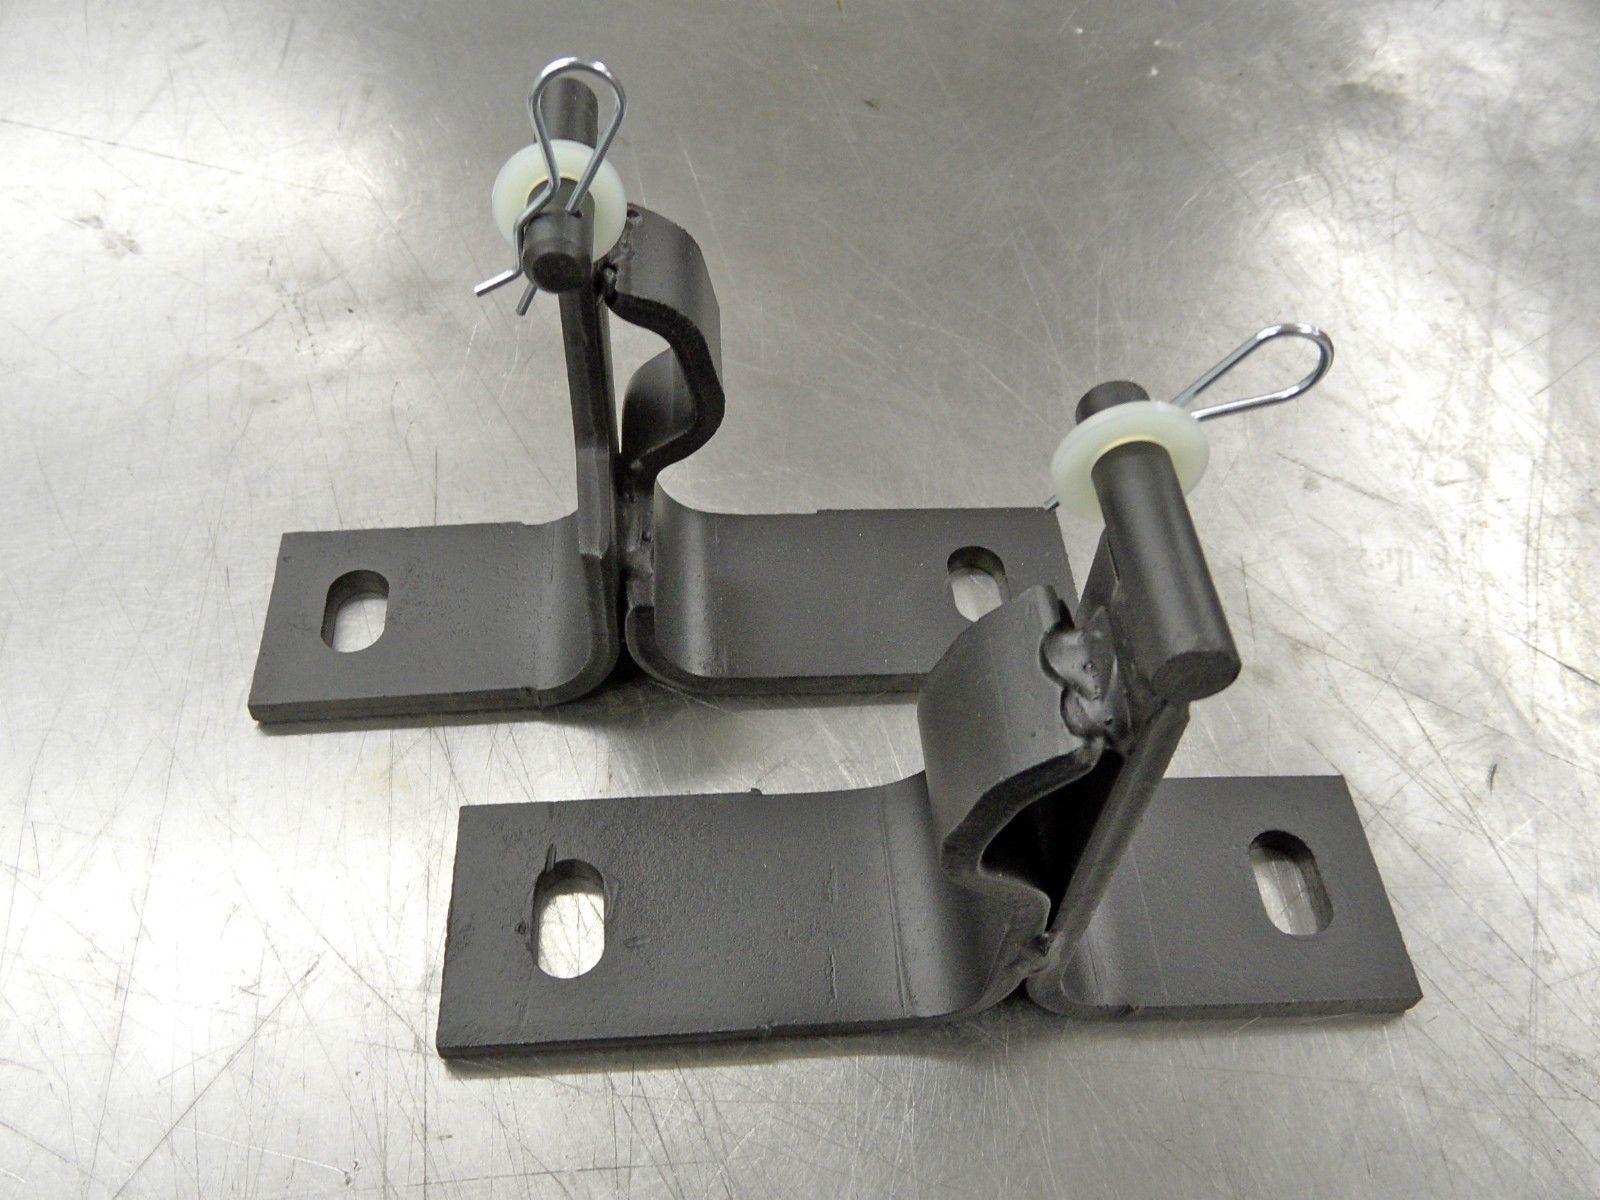 Jeep Cj Yj Rear Seat Mount Brackets W Hardware For Fold Tumble Rear Seat Ebay Jeep Cj Rear Seat Jeep